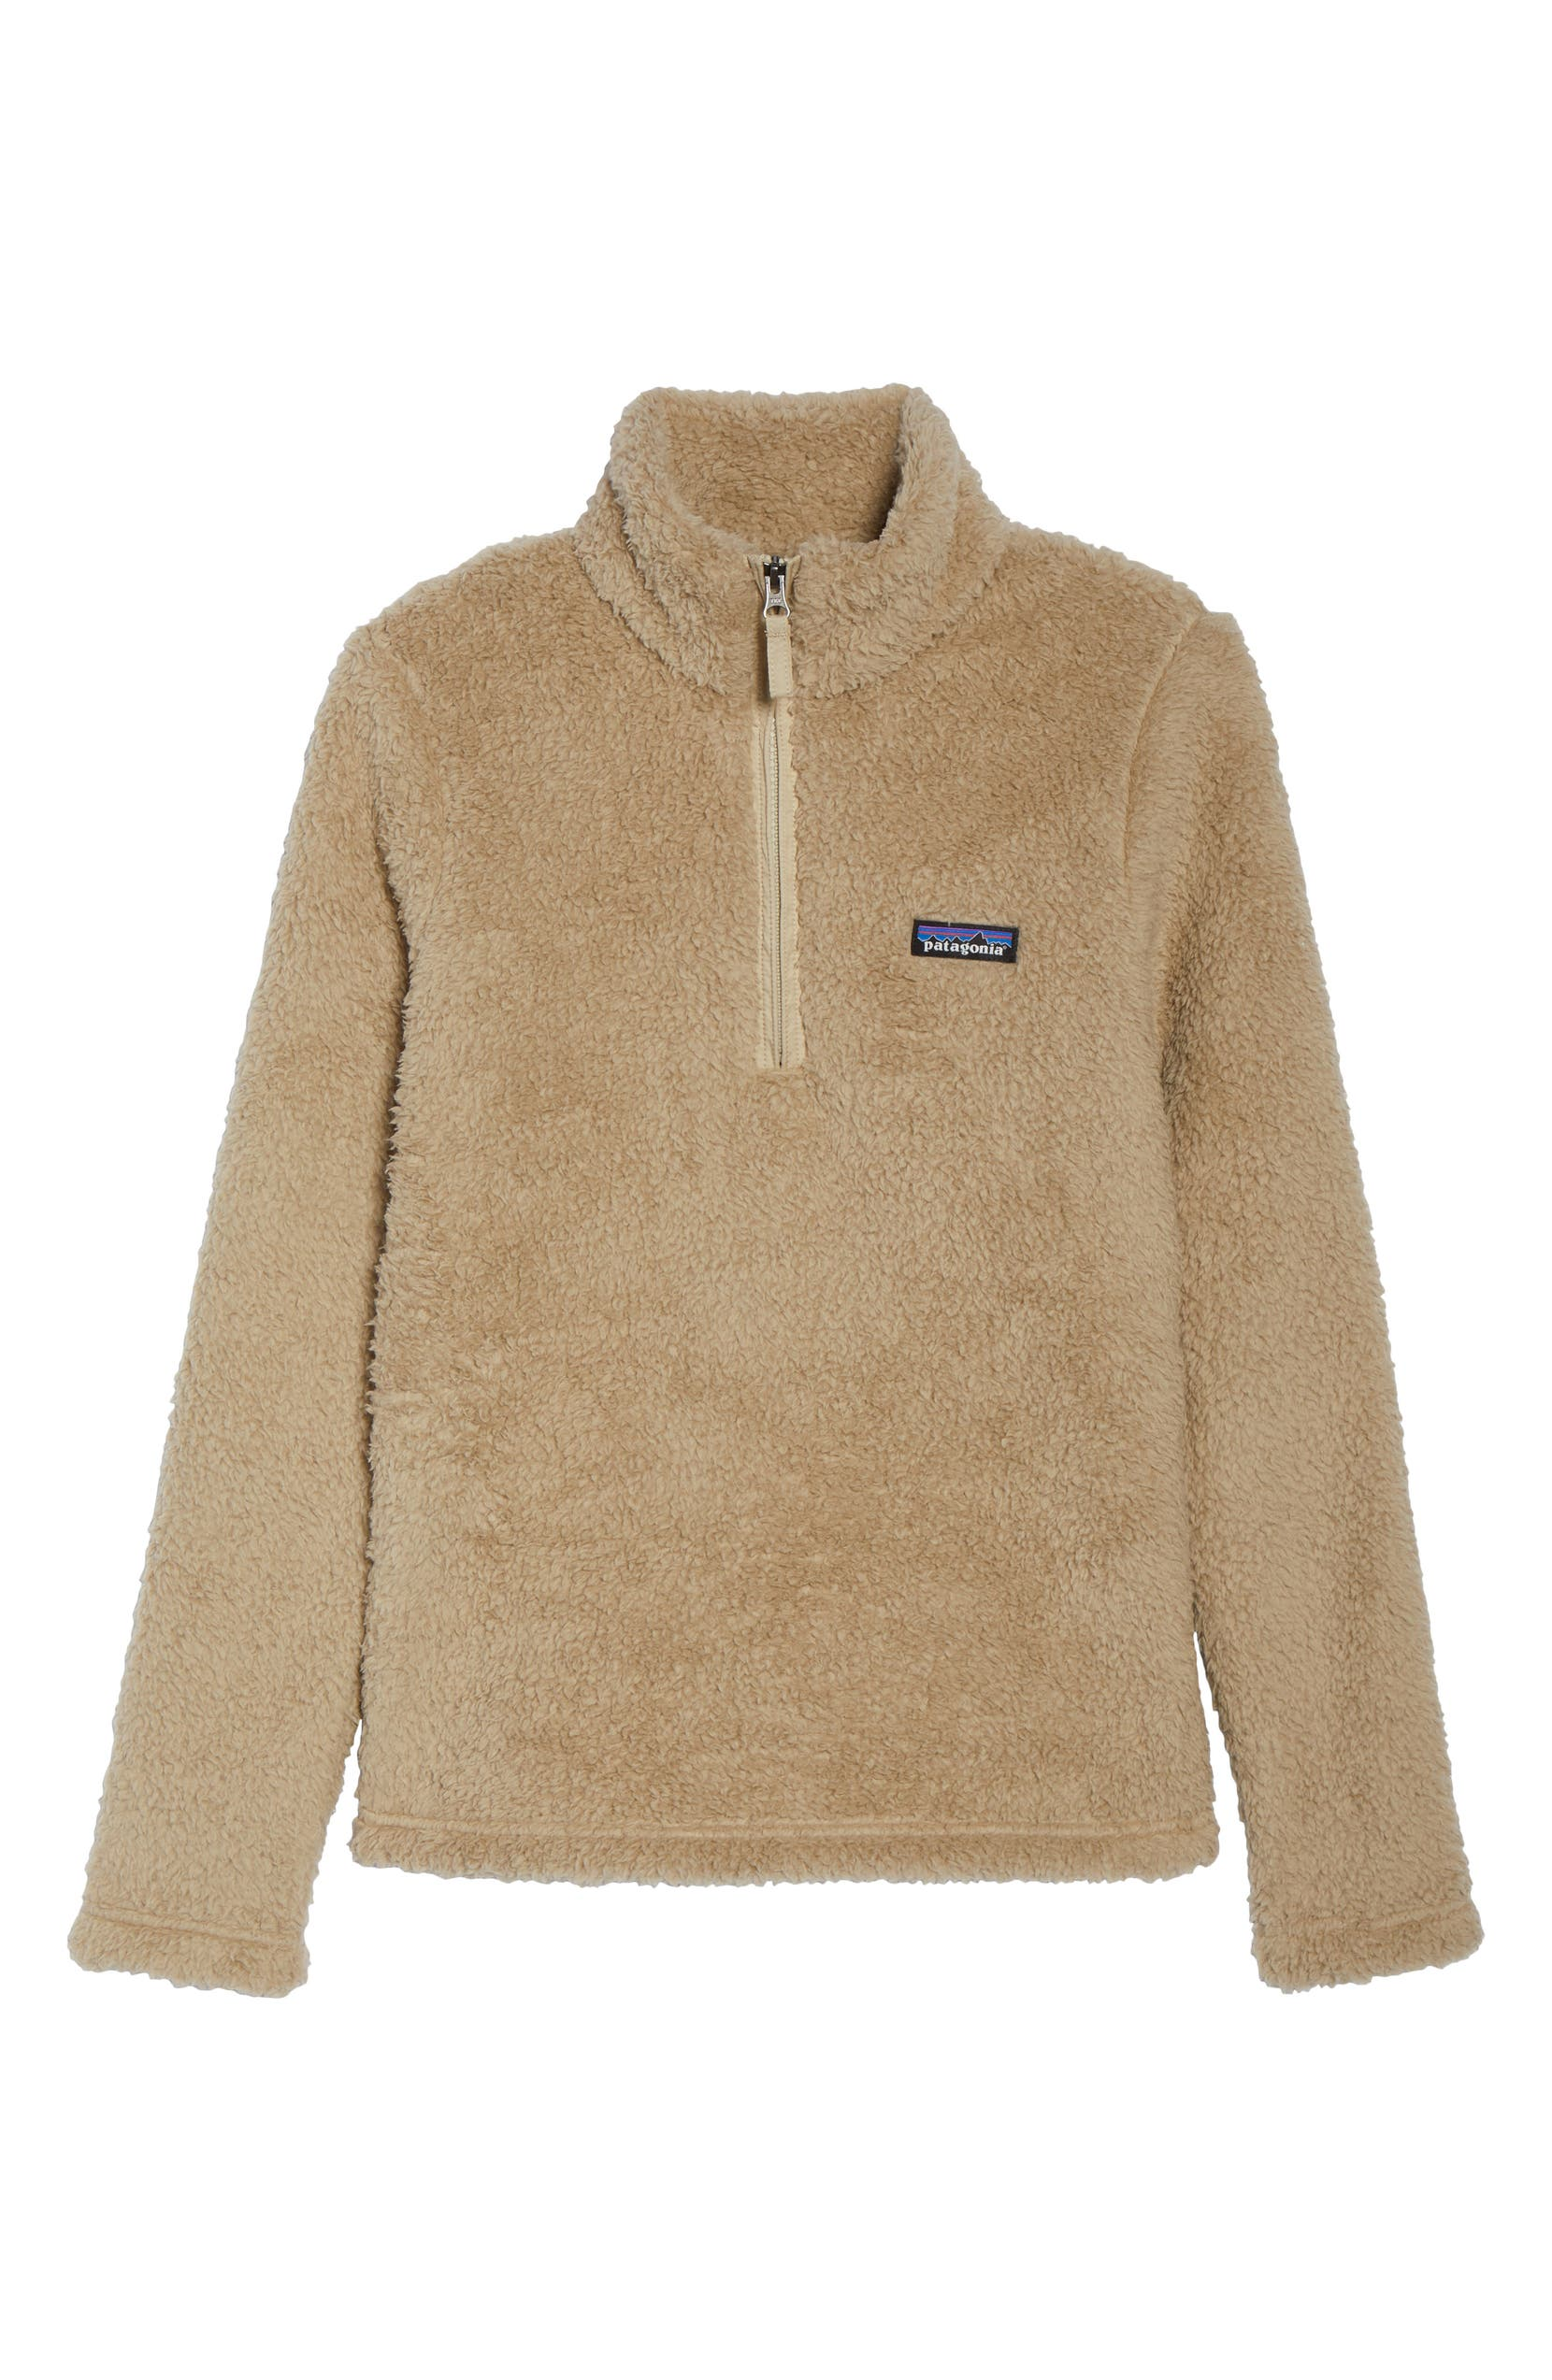 Los Gatos Fleece Pullover,                         Alternate,                         color, EL CAP KHAKI